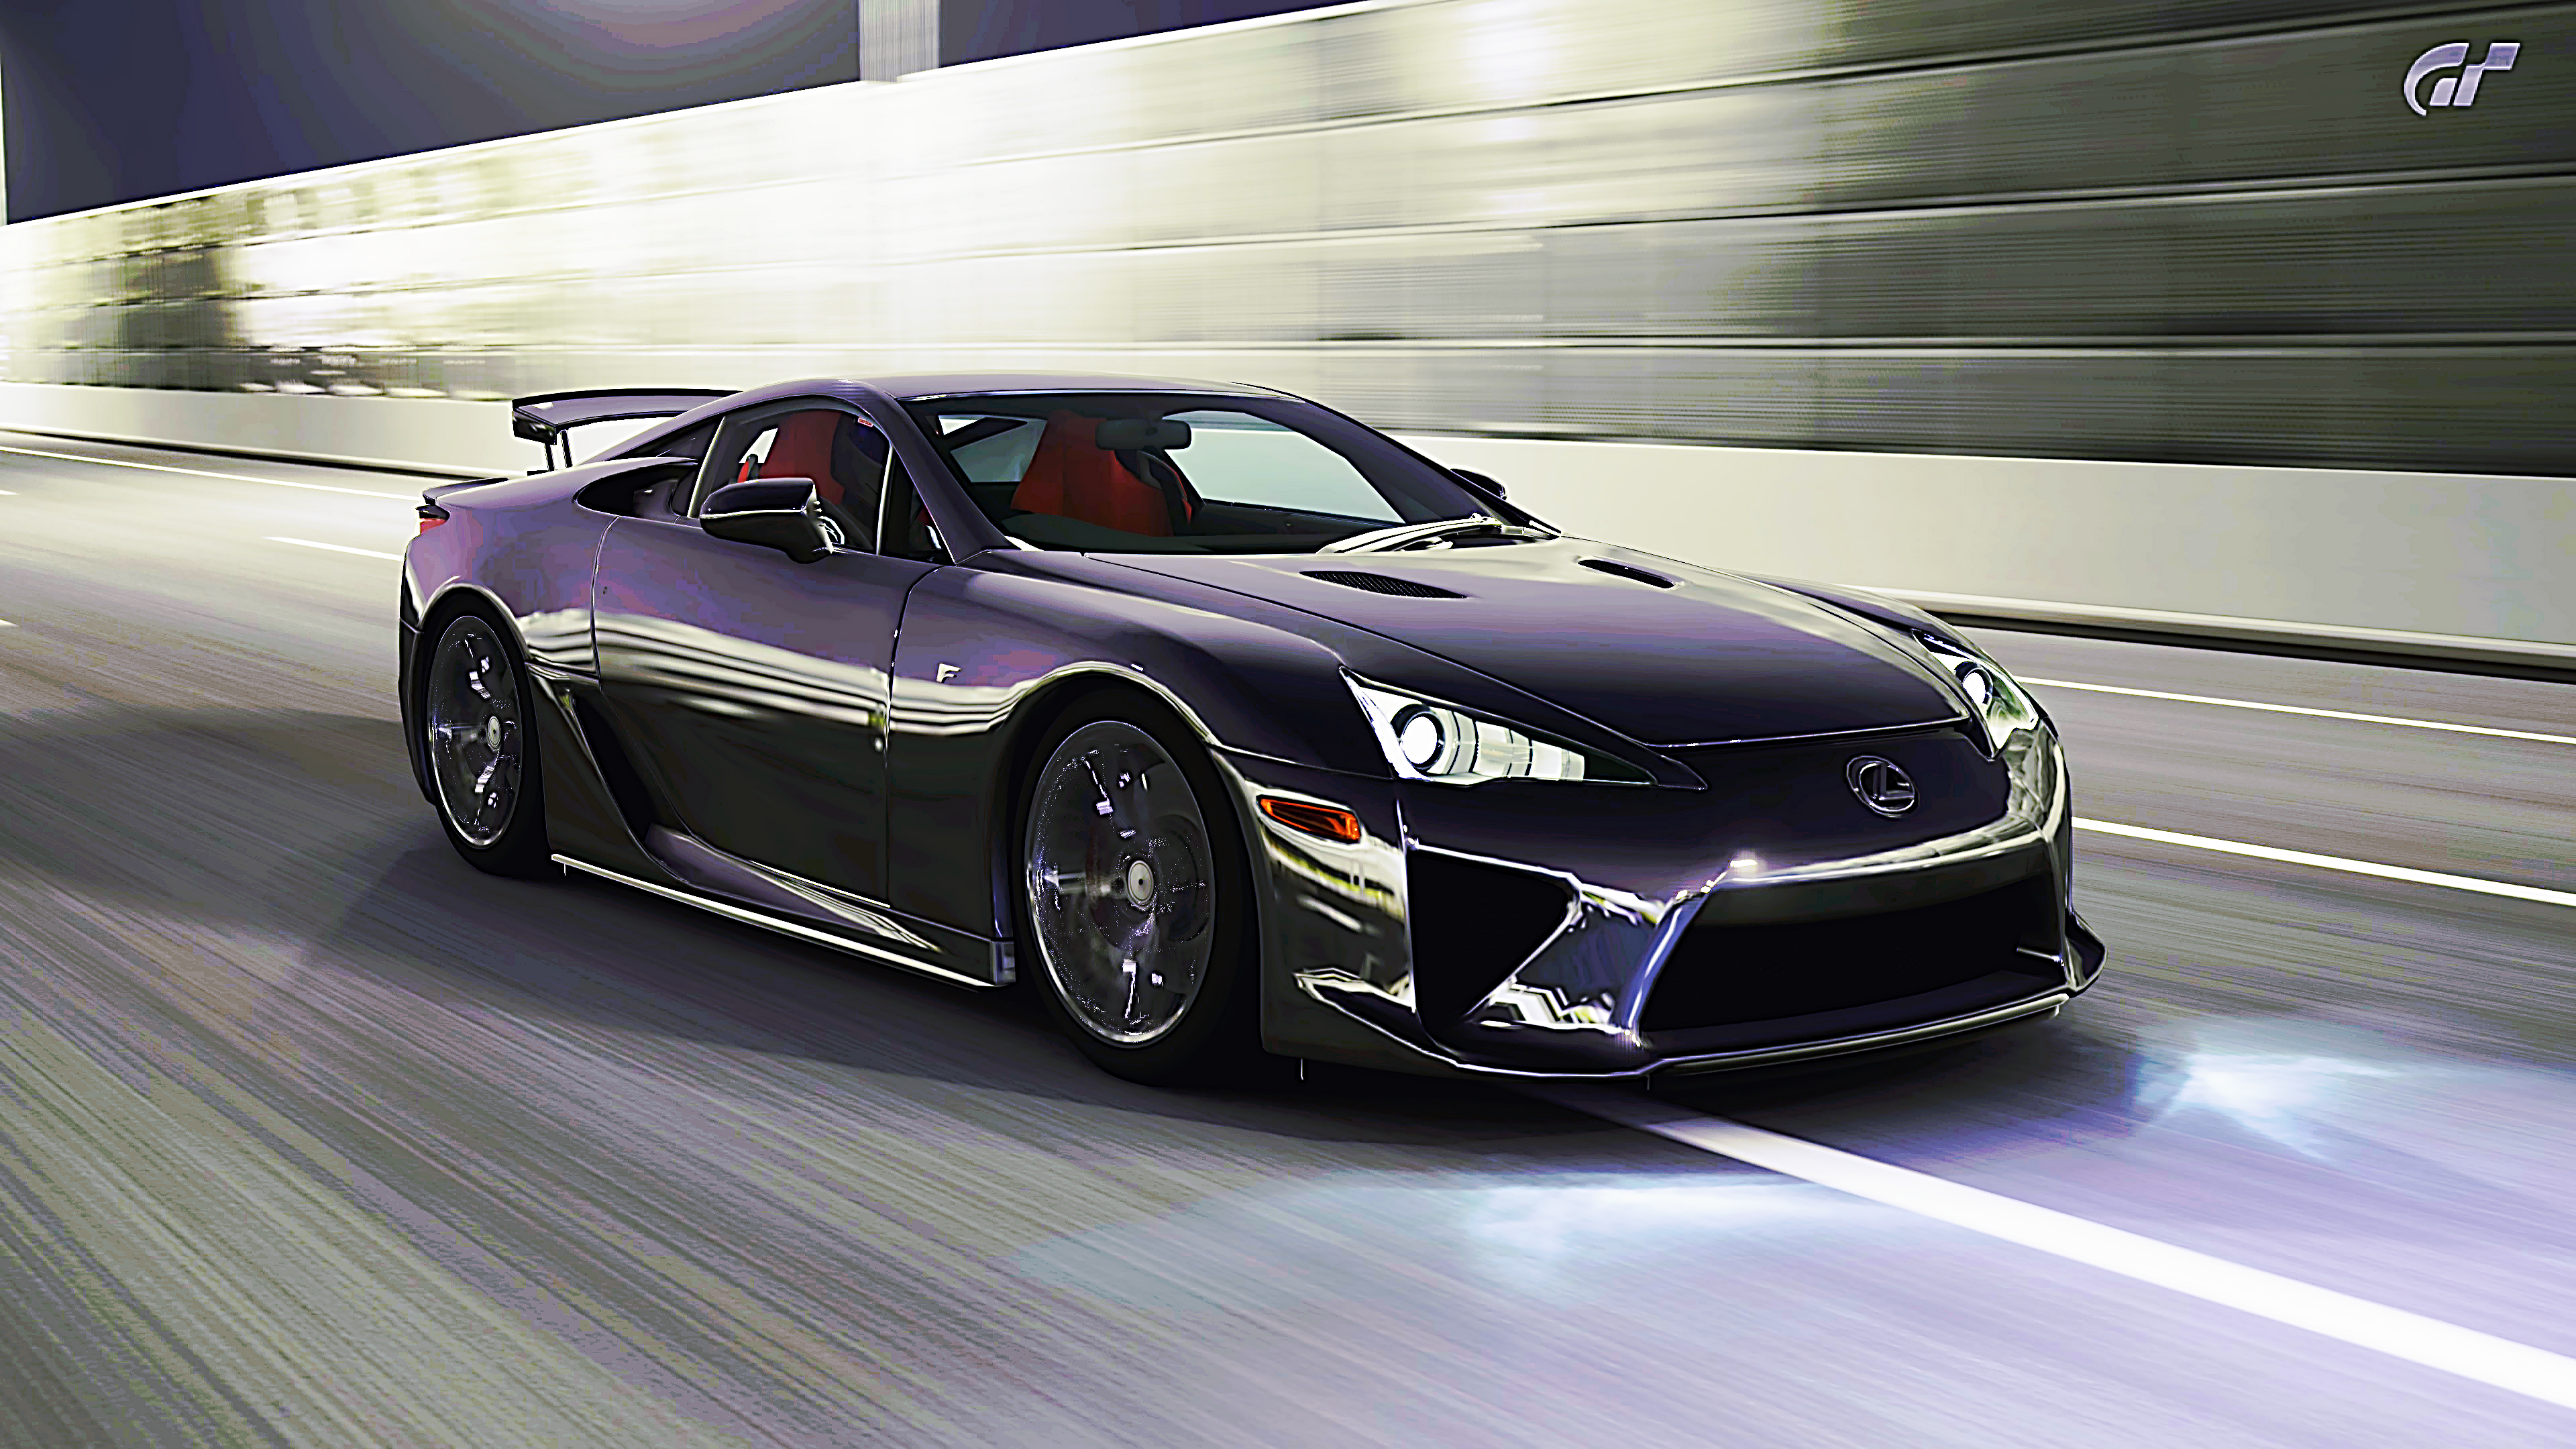 Lexus LFA by StrayShadows Lexus LFA by StrayShadows